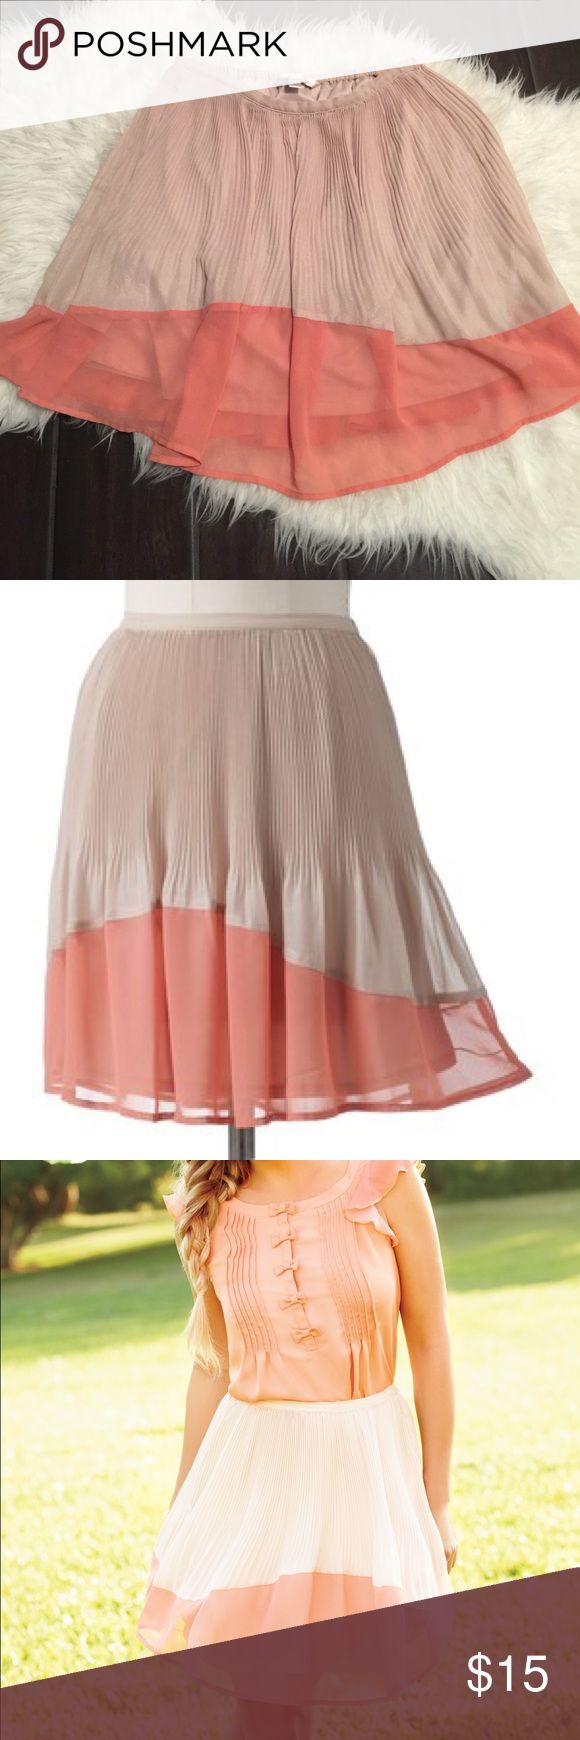 Lauren Conrad chiffon pleated coral tan skirt Excellent used condition women's size small pleated skirt. Tan area has a slight iridescent sheen to it. No trades. LC Lauren Conrad Skirts